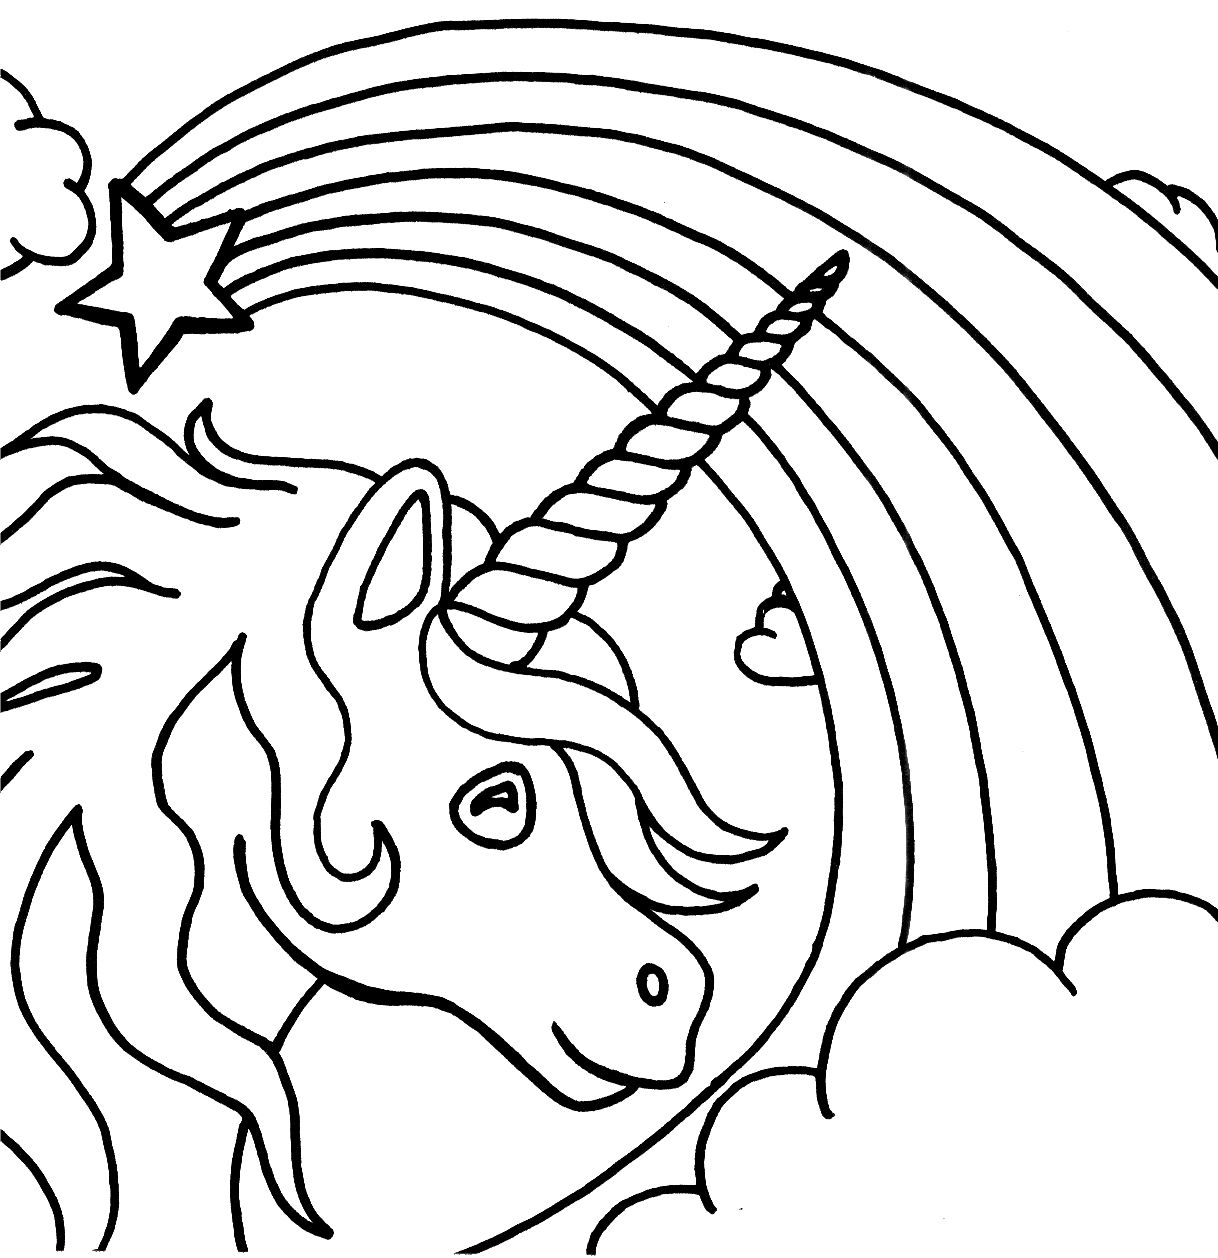 Free Printable Unicorn Coloring Pages For Kids Unicorn Coloring